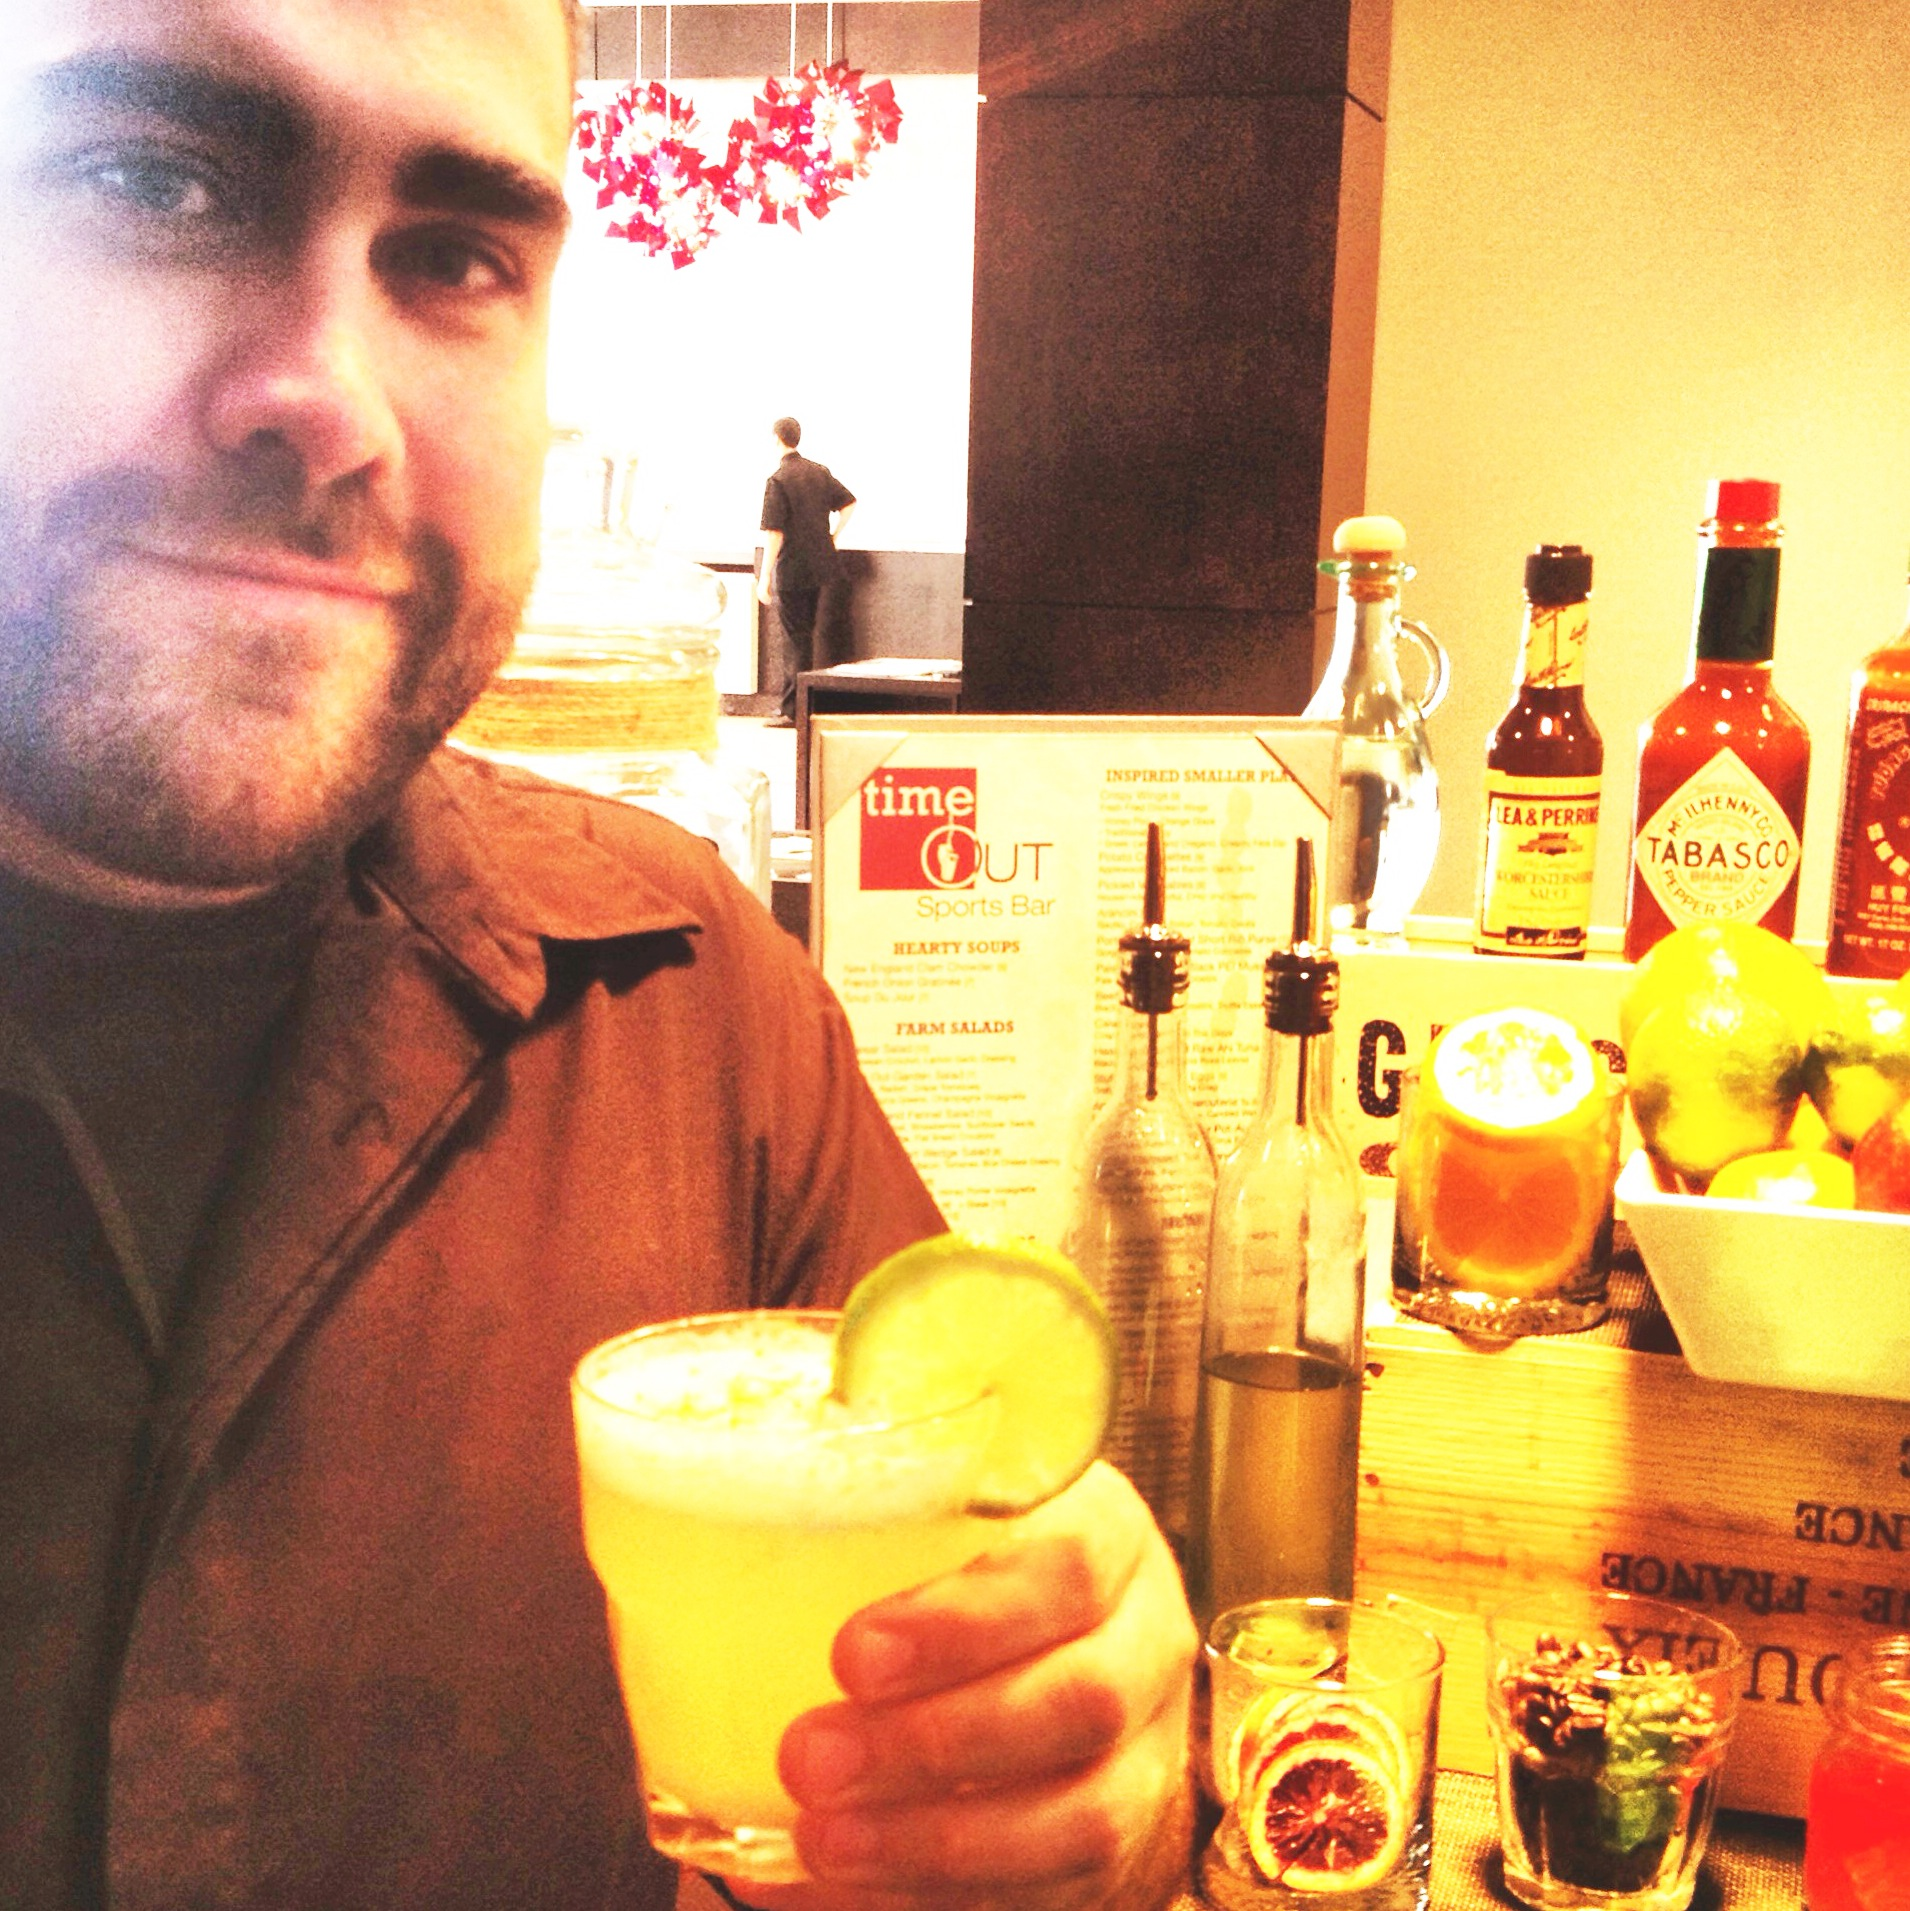 Serving Up: Time Out Sports Bar's Sweet Heat